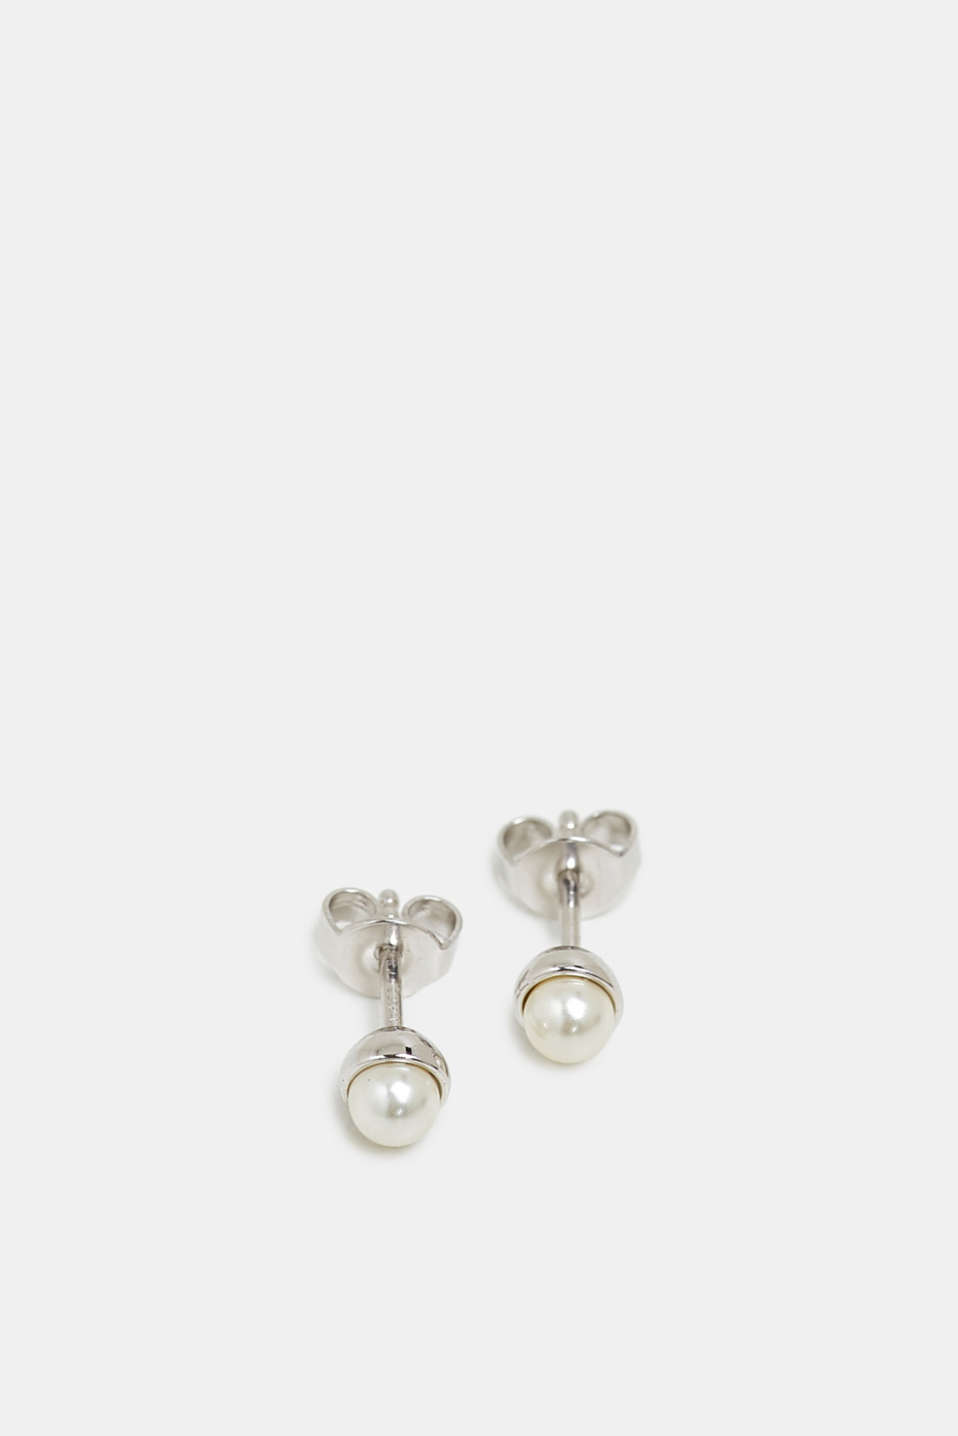 Stud earrings with a bead, sterling silver, SILVER, detail image number 1